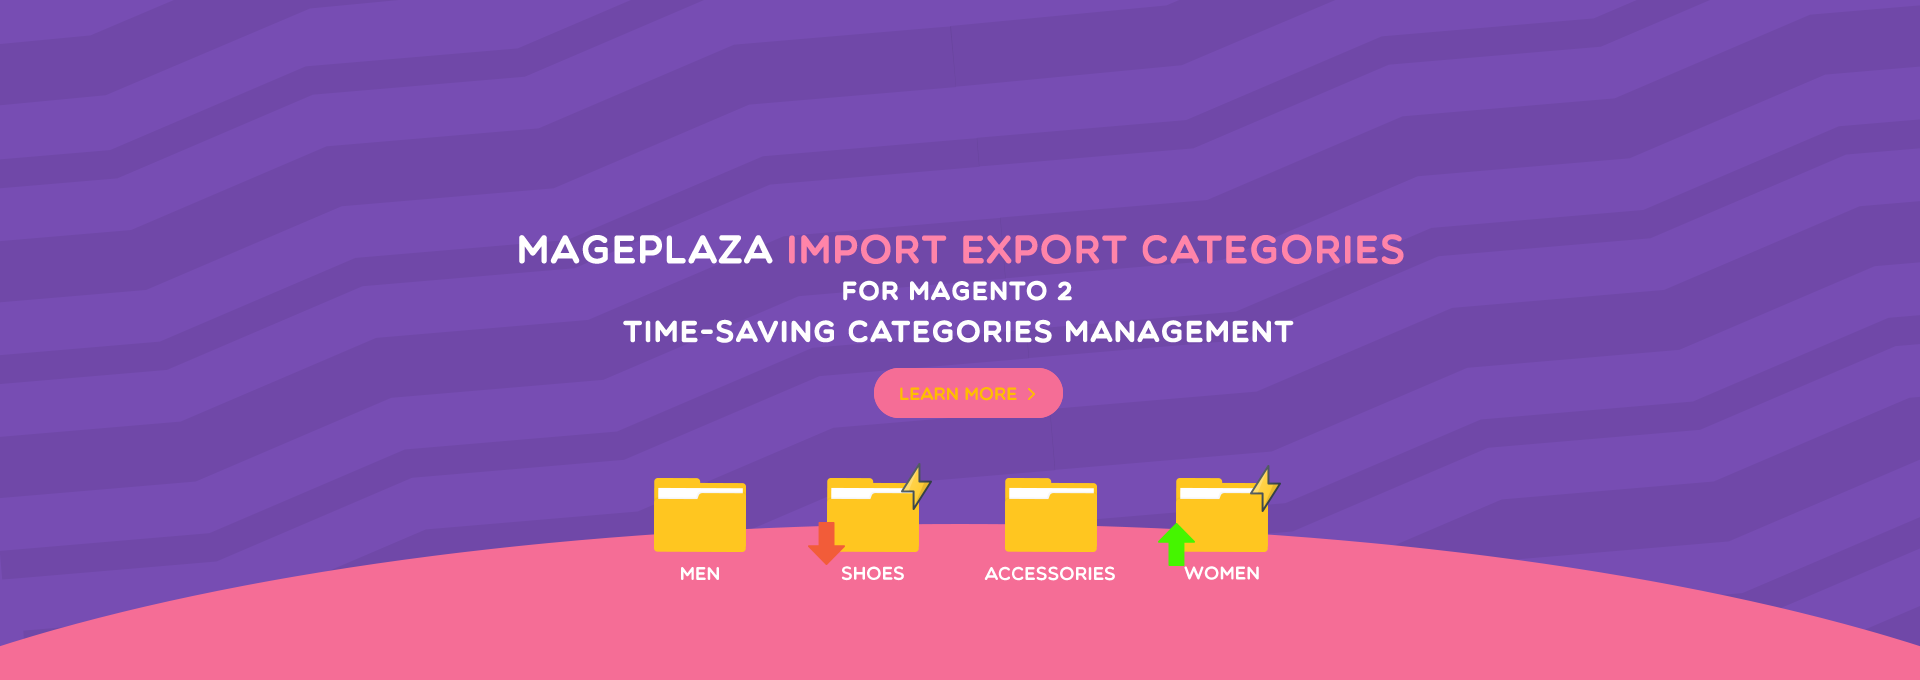 How Import Export Categories reduces workload for Magento stores